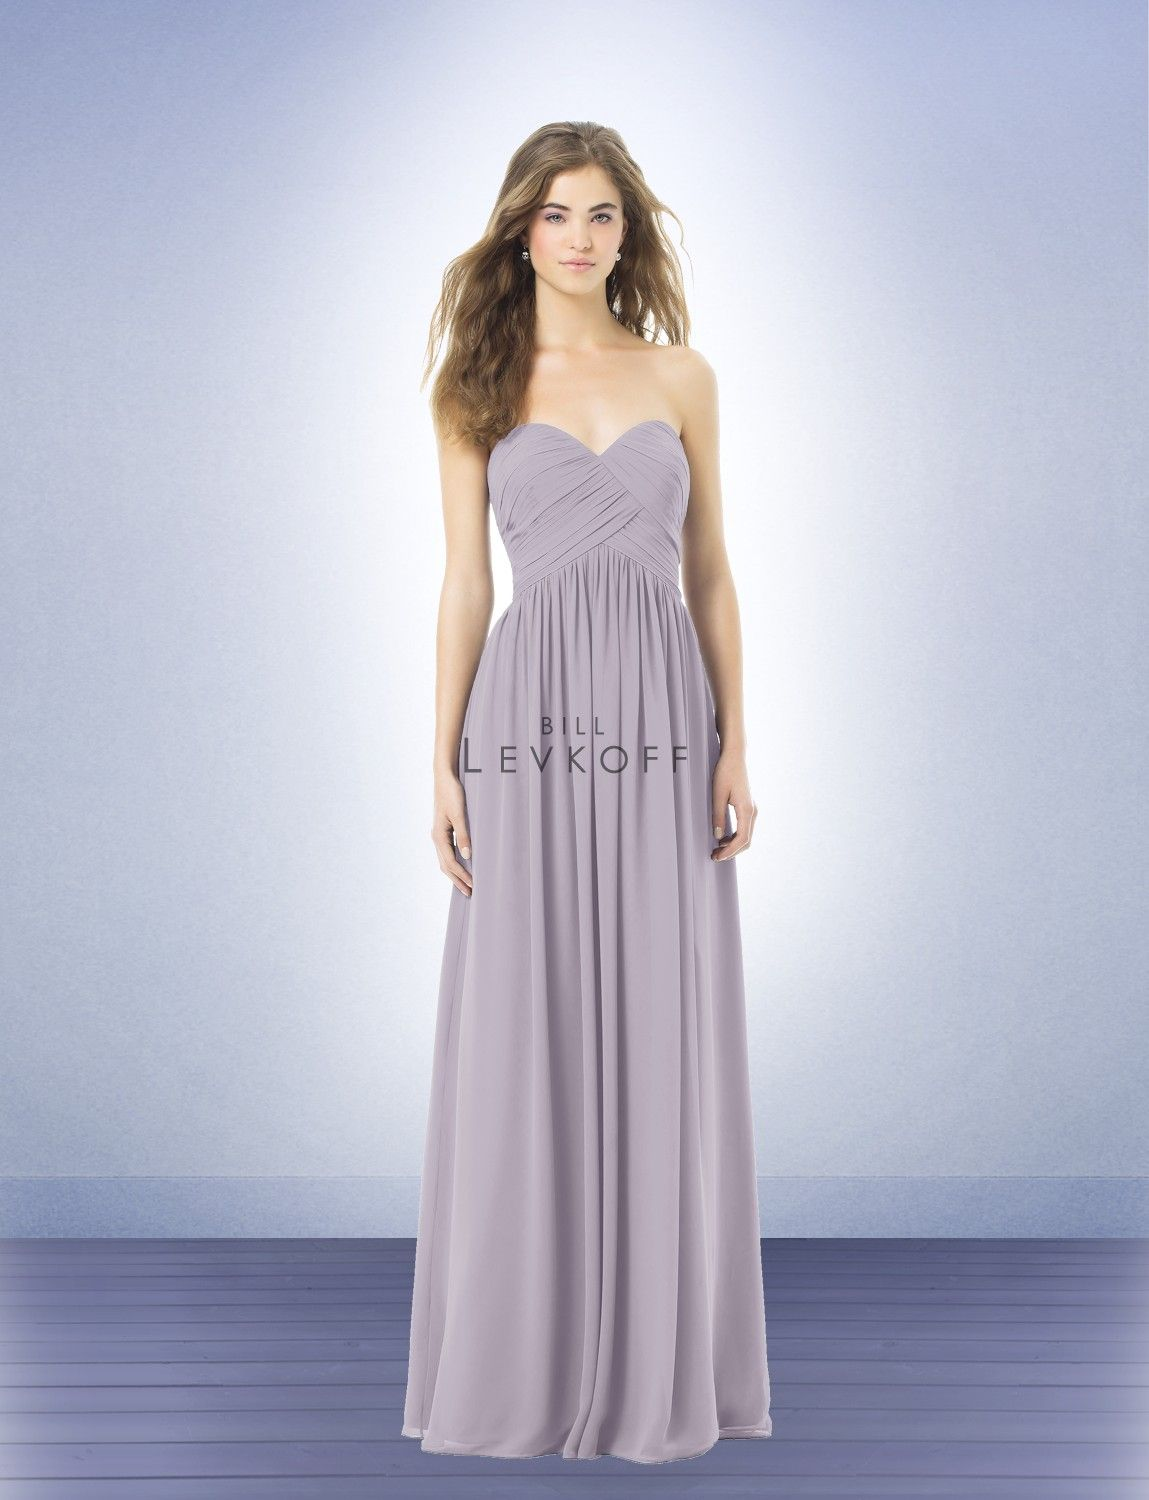 Bridesmaid dress style bridesmaid dresses by bill levkoff from